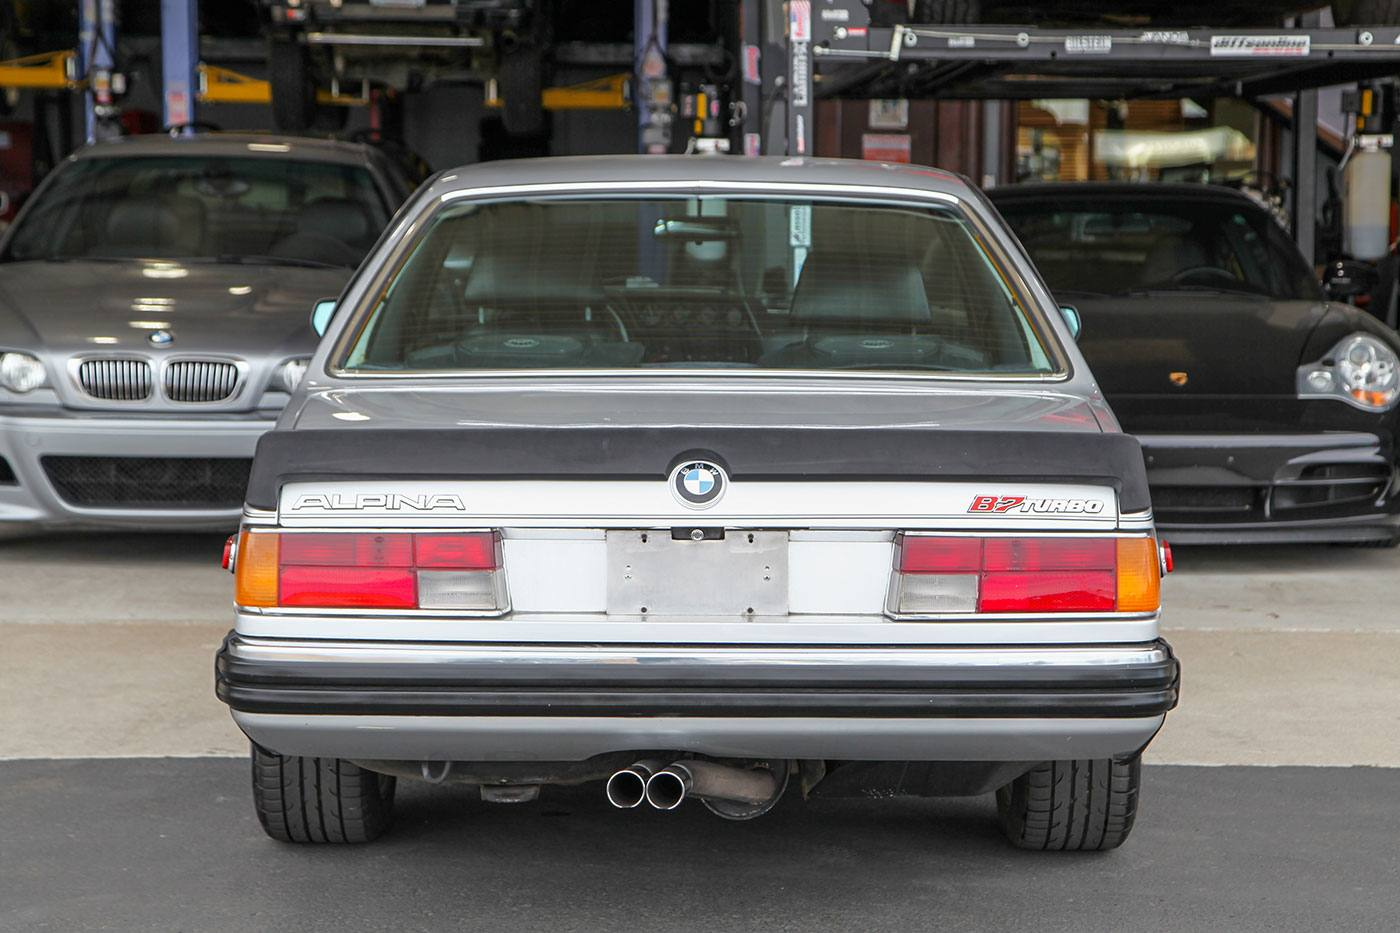 1980 Alpina B7 Turbo Coupe (E24) exterior photo